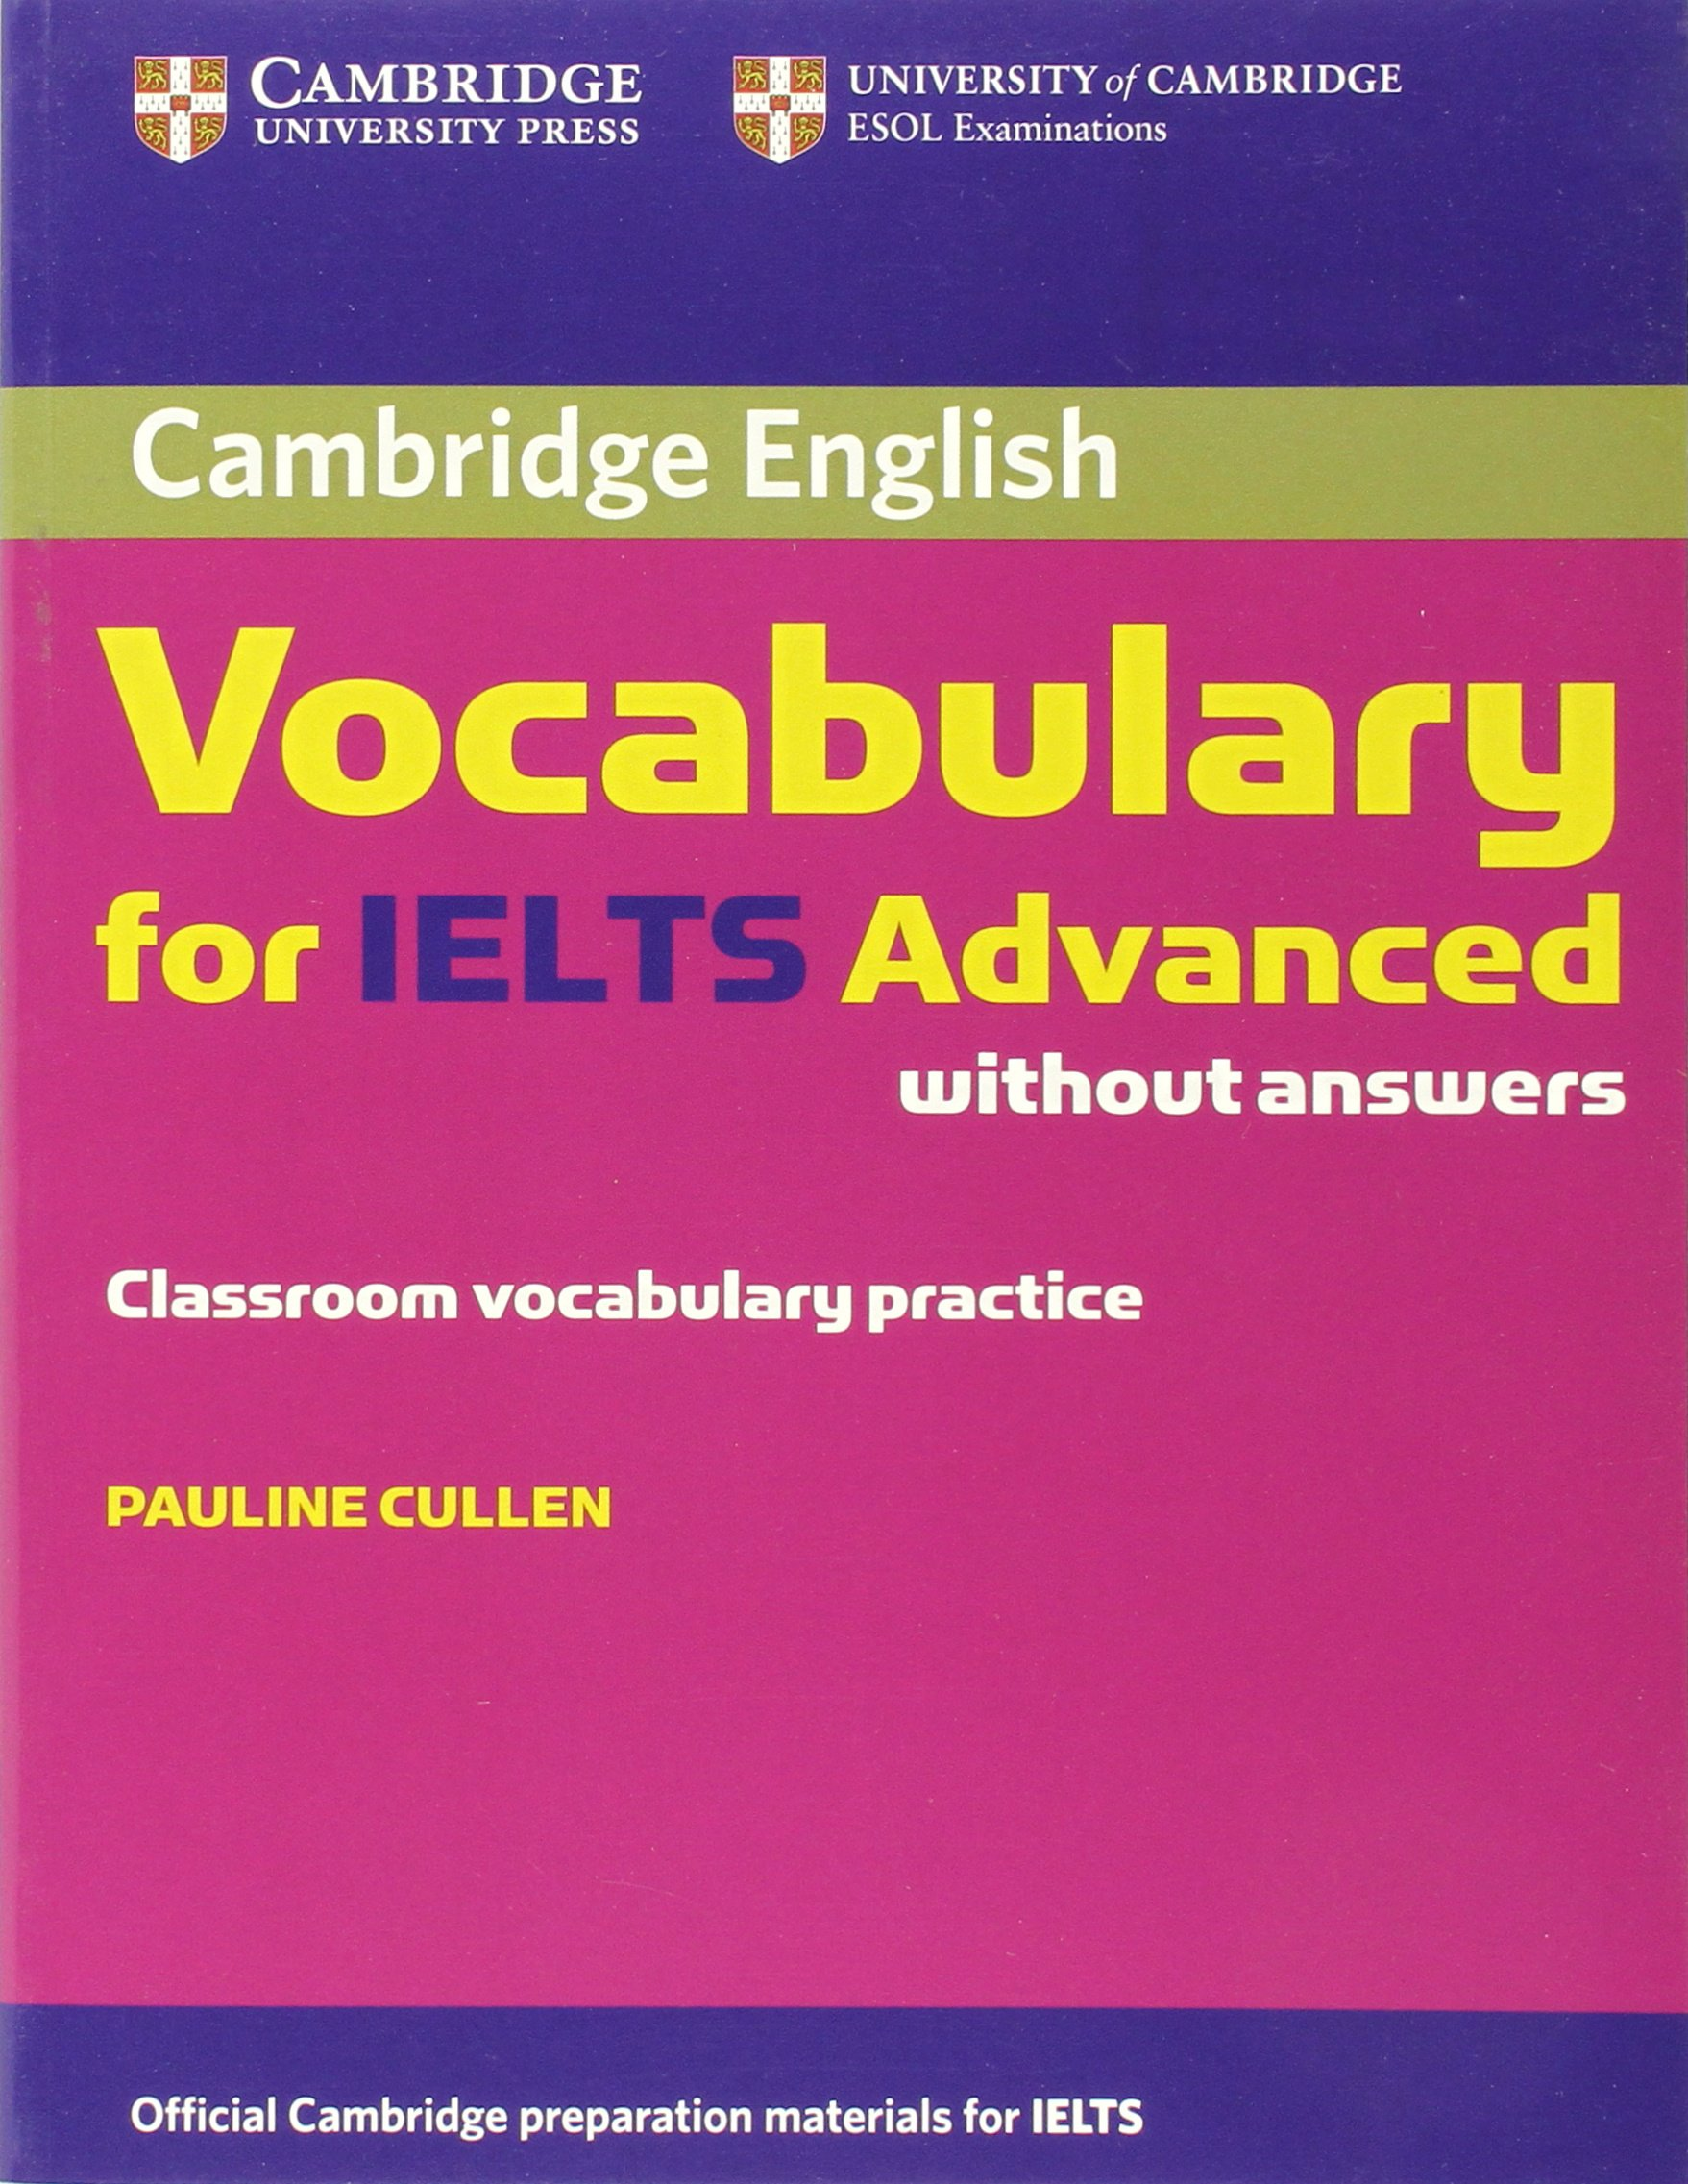 Cambridge Vocabulary For IELTS - Learn Vocab in IELTS Reading